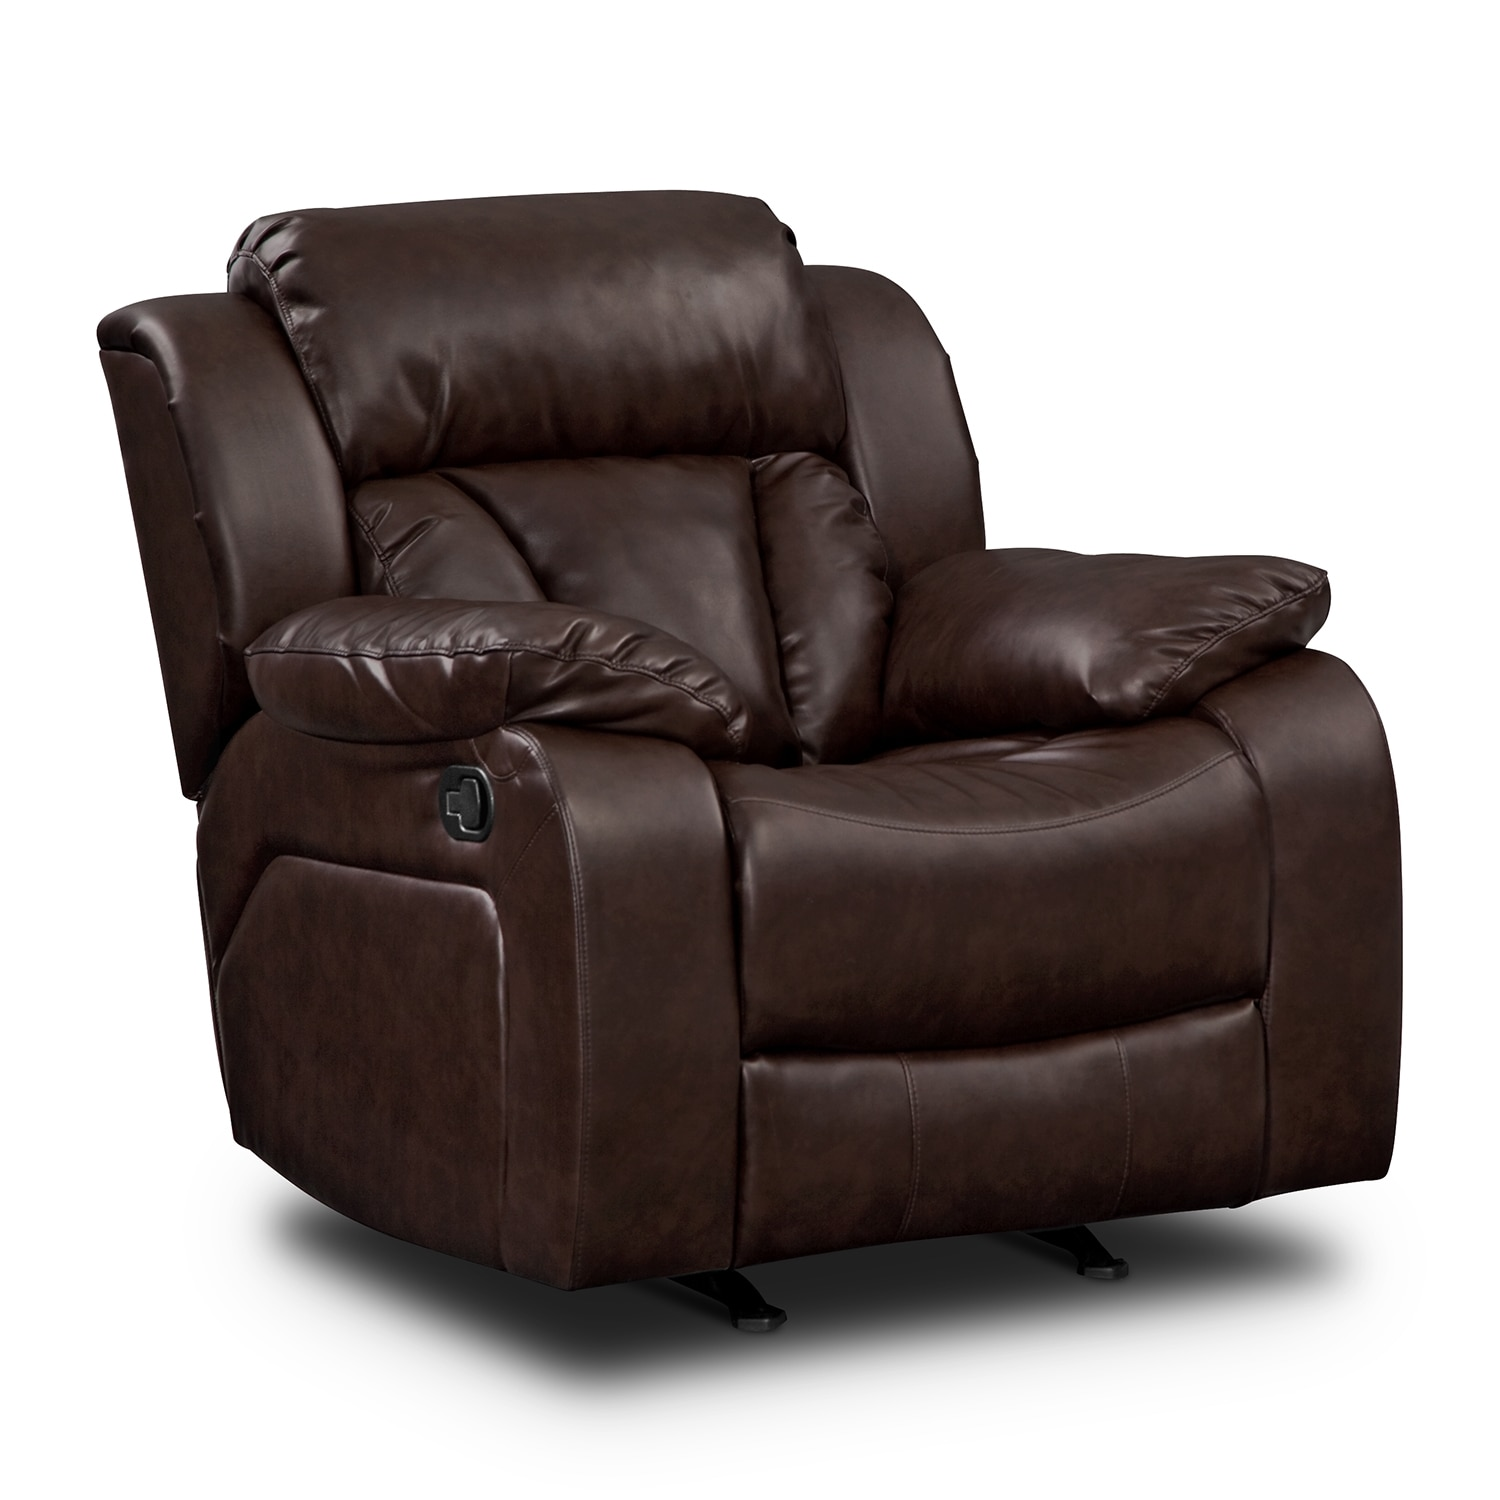 Maverick Leather 2 Pc Reclining Living Room W Rocker Recliner Value City Furniture